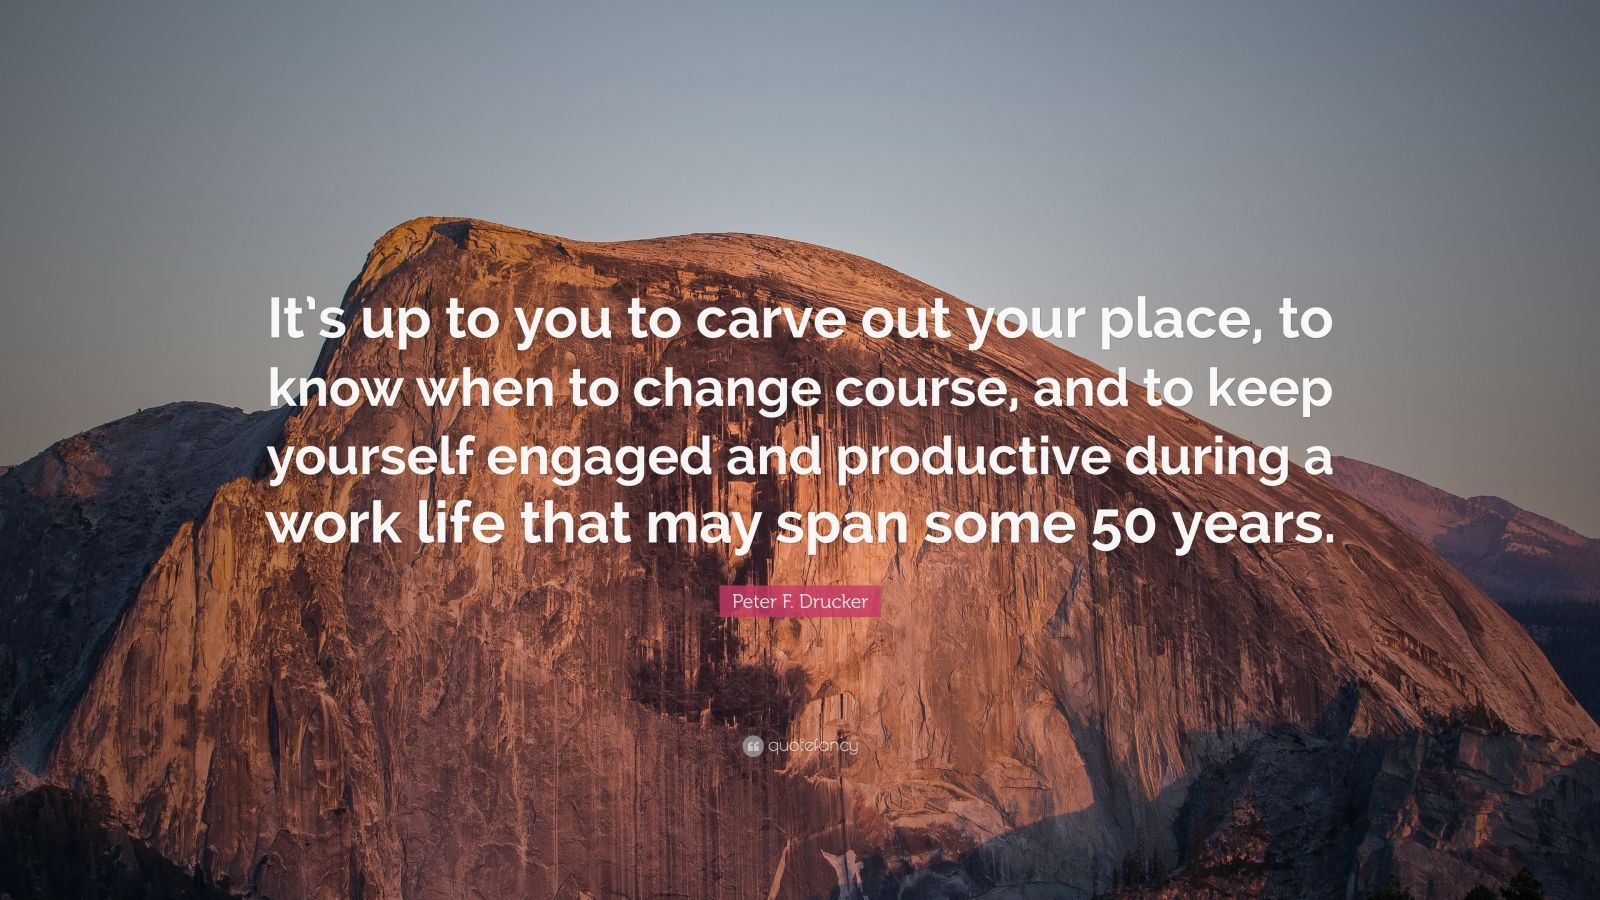 """Peter F. Drucker Quote: """"It's up to you to carve out your place, to know when to change course, and to keep yourself engaged and productive during a work life that may span some 50 years."""""""